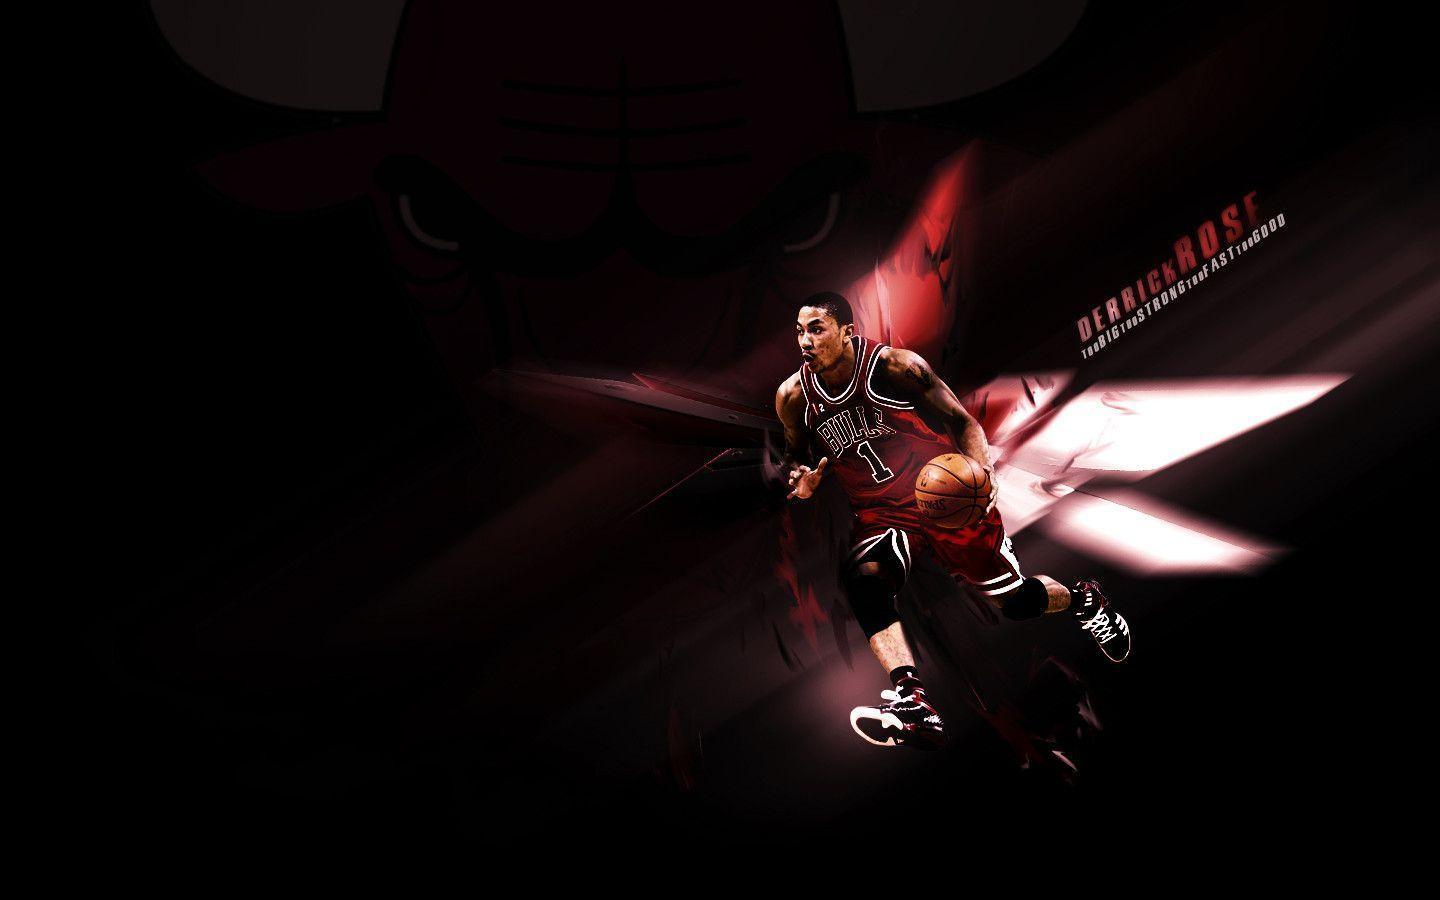 Chicago bulls wallpapers hd wallpaper cave 2013 chicago bulls wallpaper hd 2 24499 images hd wallpapers voltagebd Gallery